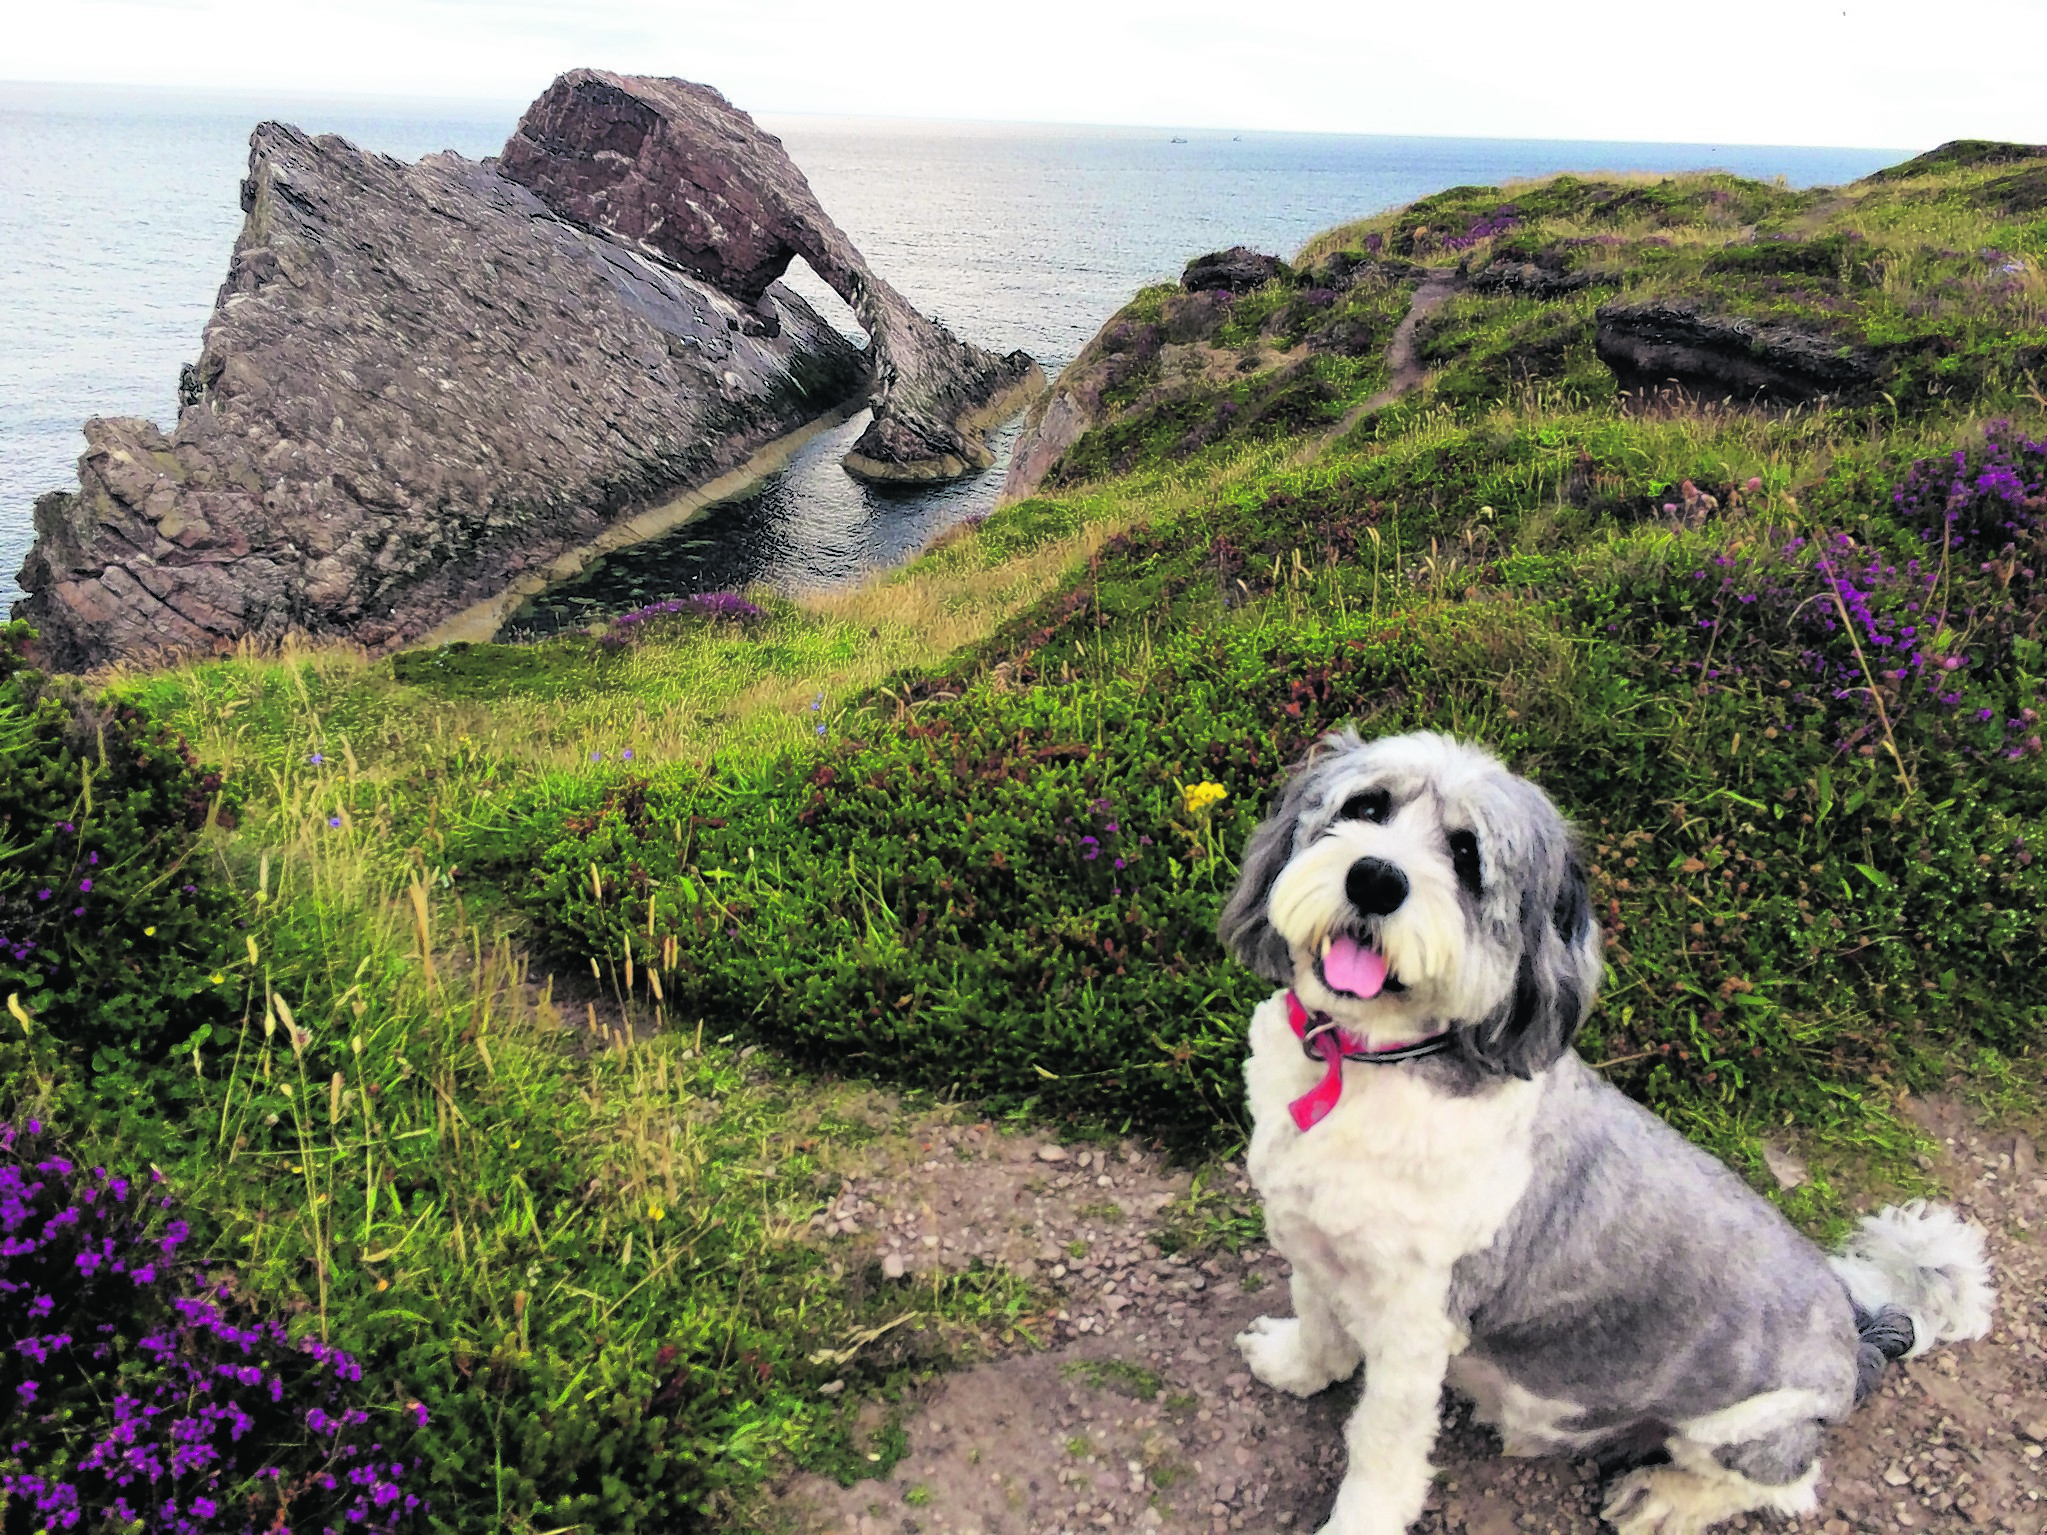 Here is Jenson by the Bow Fiddle Rock in Portknockie.